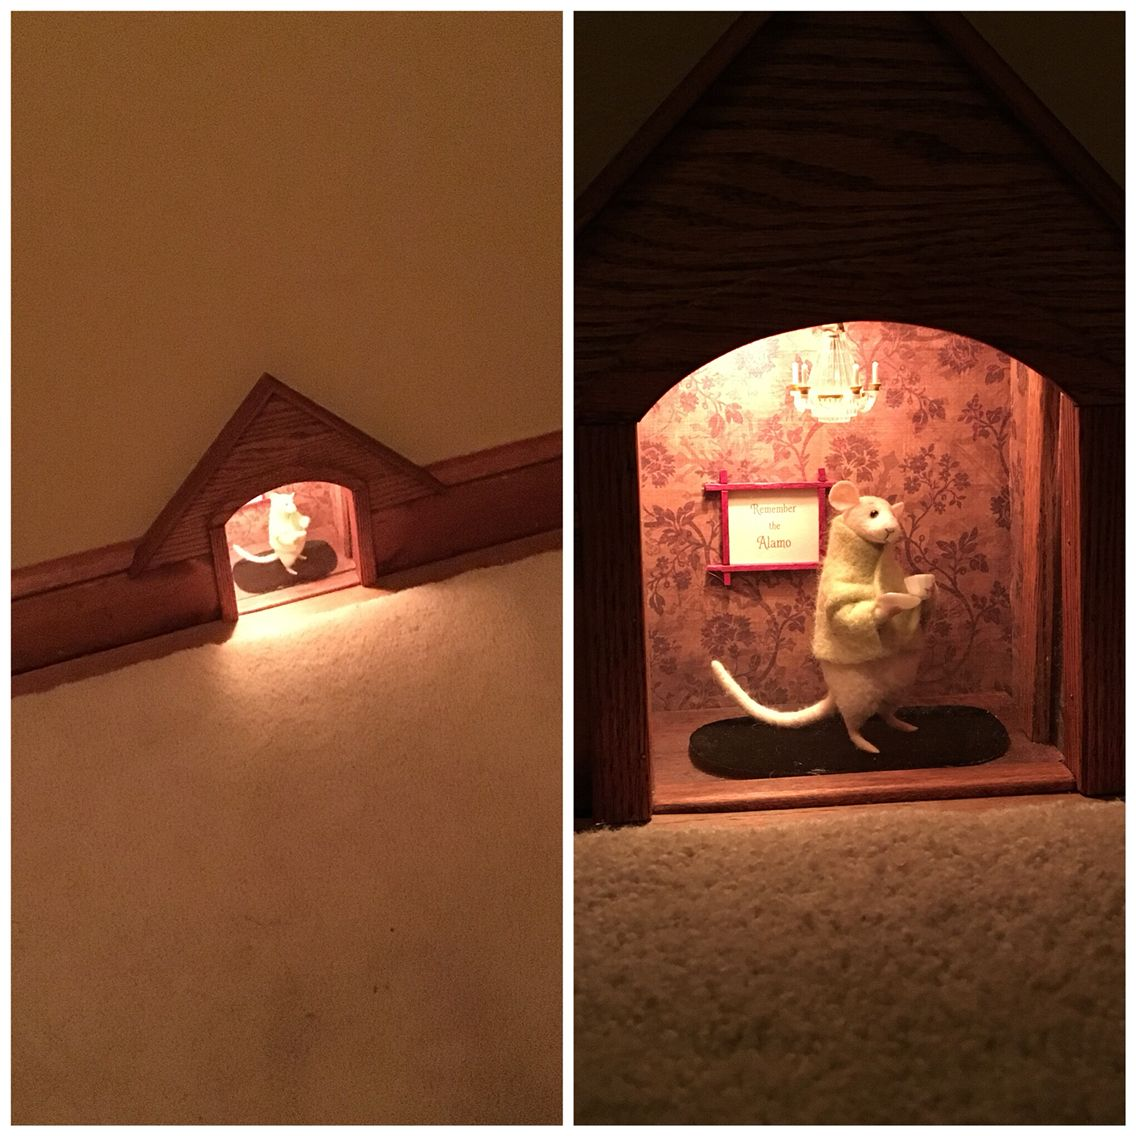 Lamp And Nightlight Mouse Hole Night Light Built Into The Baseboard Diy